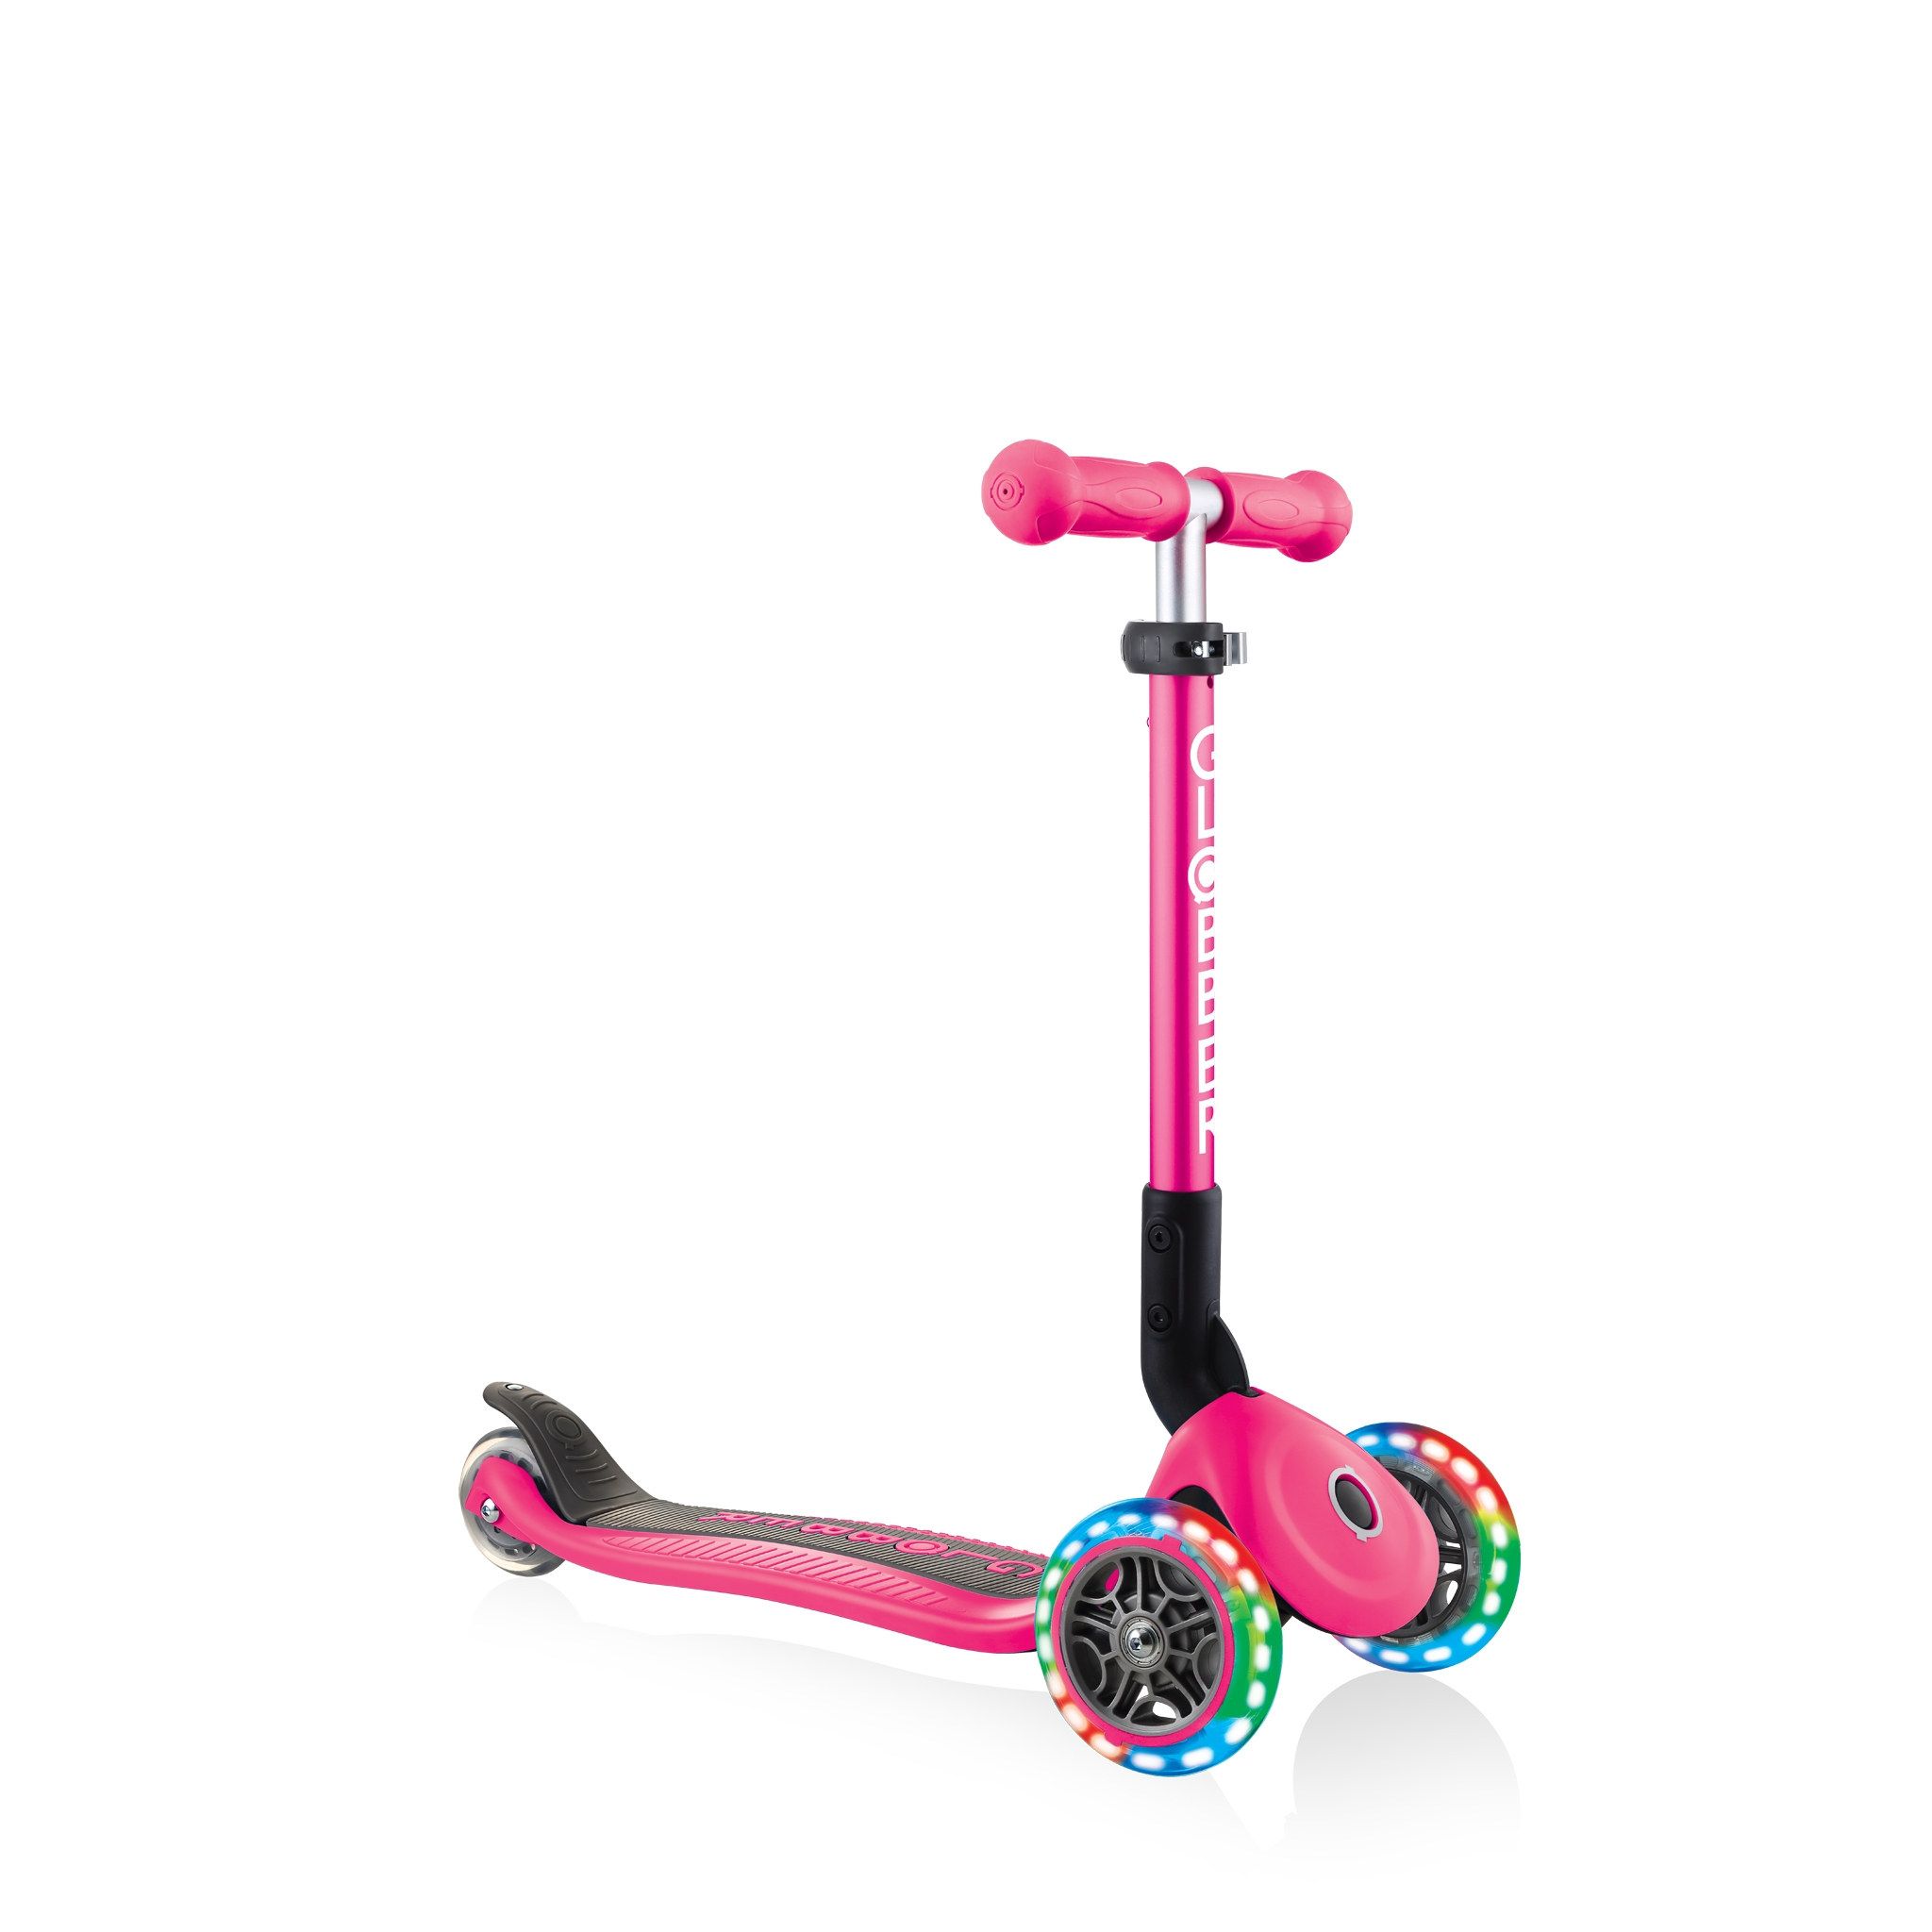 3-wheel-foldable-light-up-scooter-for-toddlers-aged-2-years-old-Globber-JUNIOR-FOLDABLE-LIGHTS